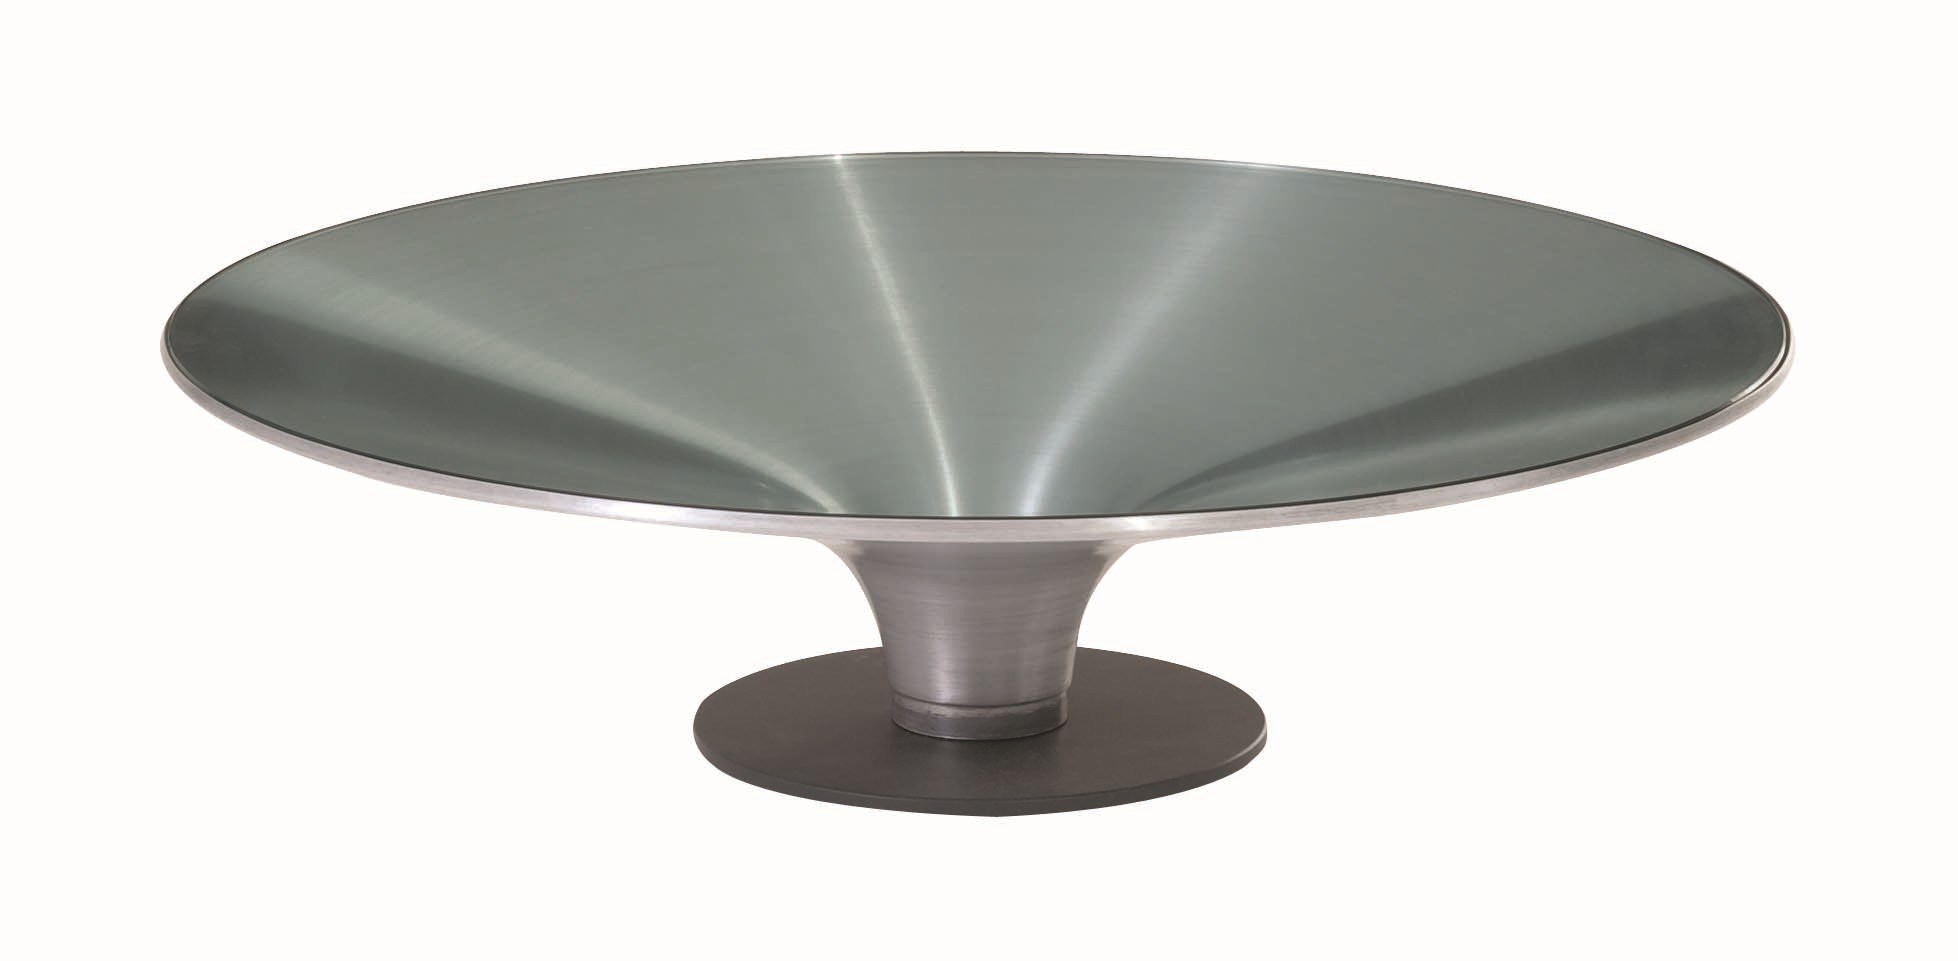 Table Basse La Roche Bobois Roche Bobois Table Basse